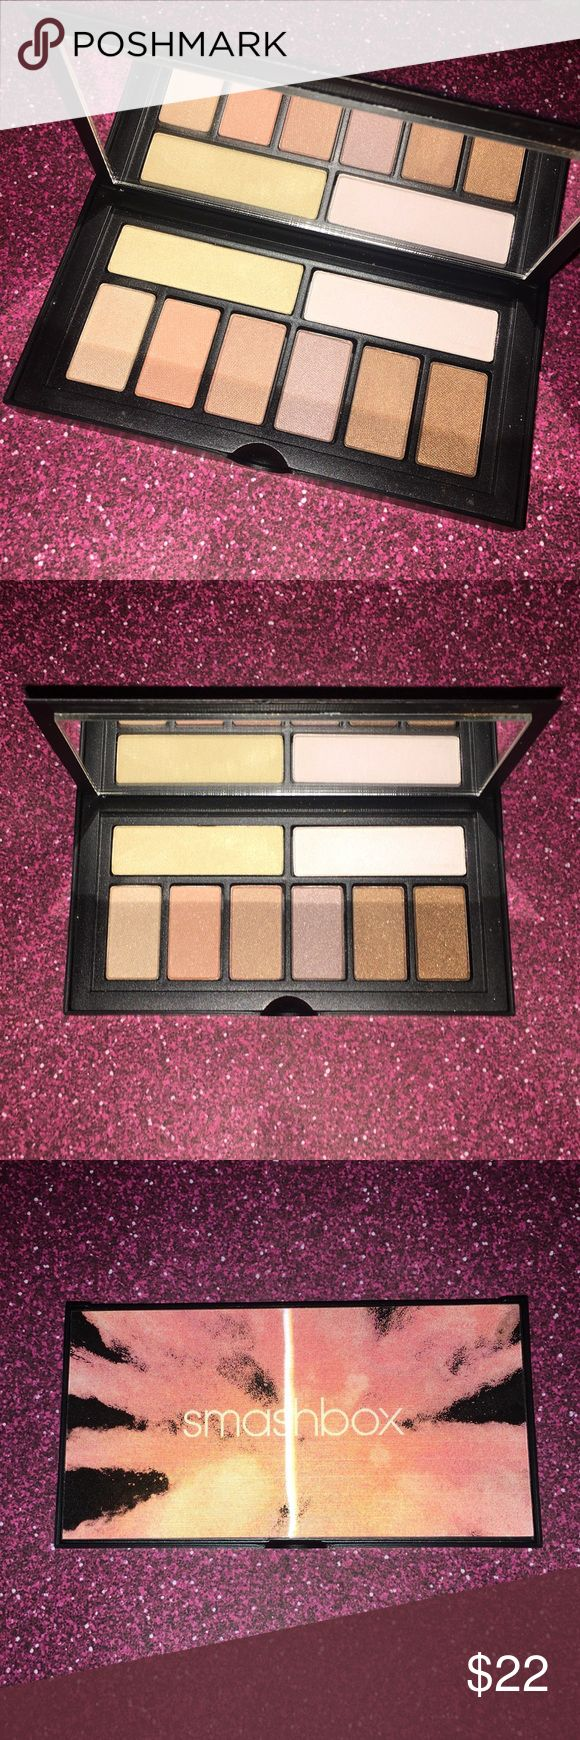 Smashbox cover shot: soft palette Smashbox eyeshadow palette Nice travel size  Cool packaging Nice, light colors Smashbox Makeup Eyeshadow